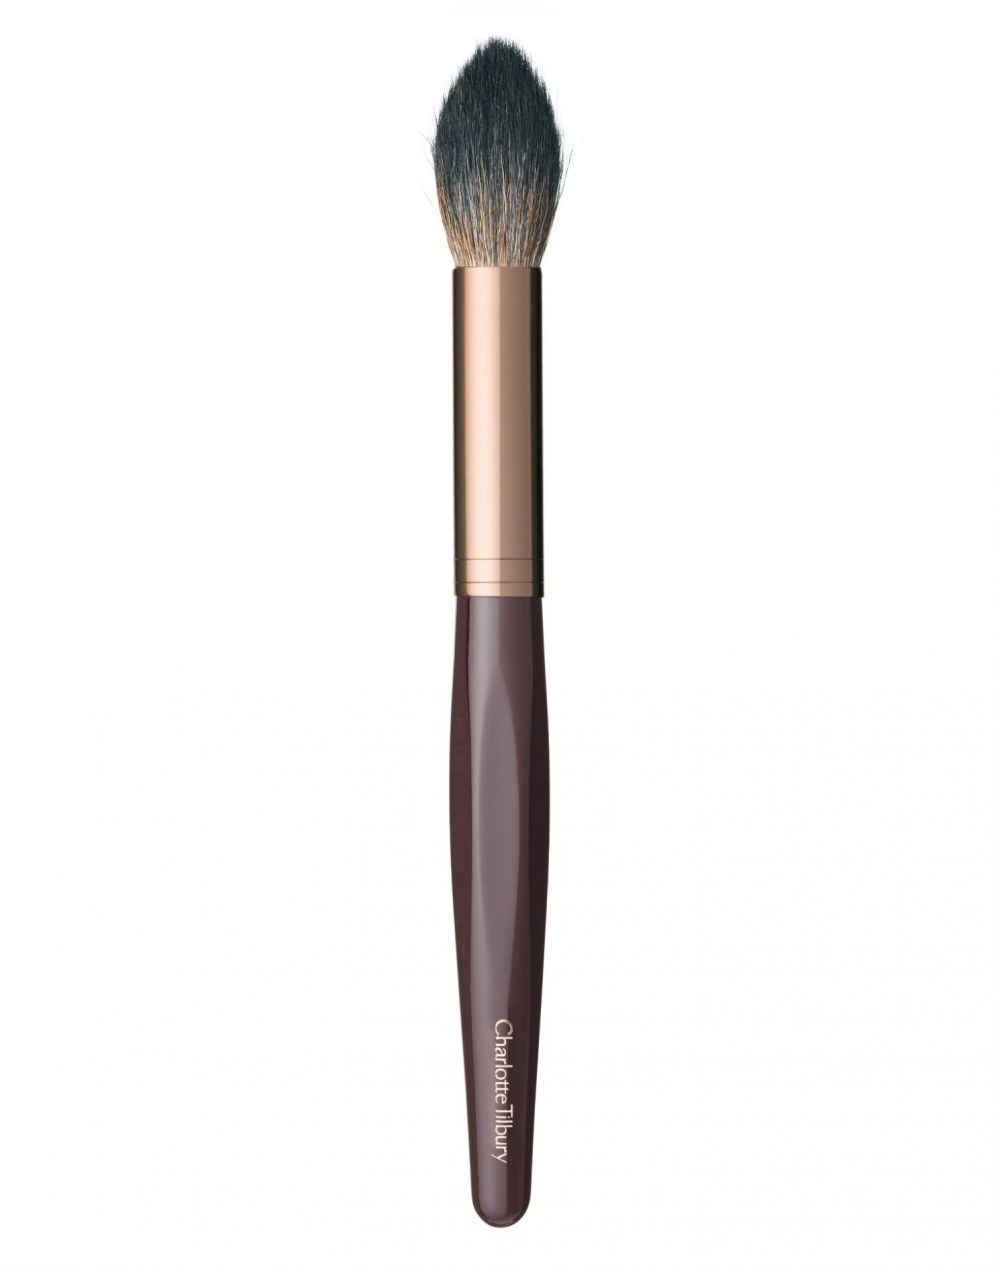 CHARLOTTE TILBURY POWDER SCULPT BRUSH PĘDZEL DO PUDRU I ROZŚWIETLACZA